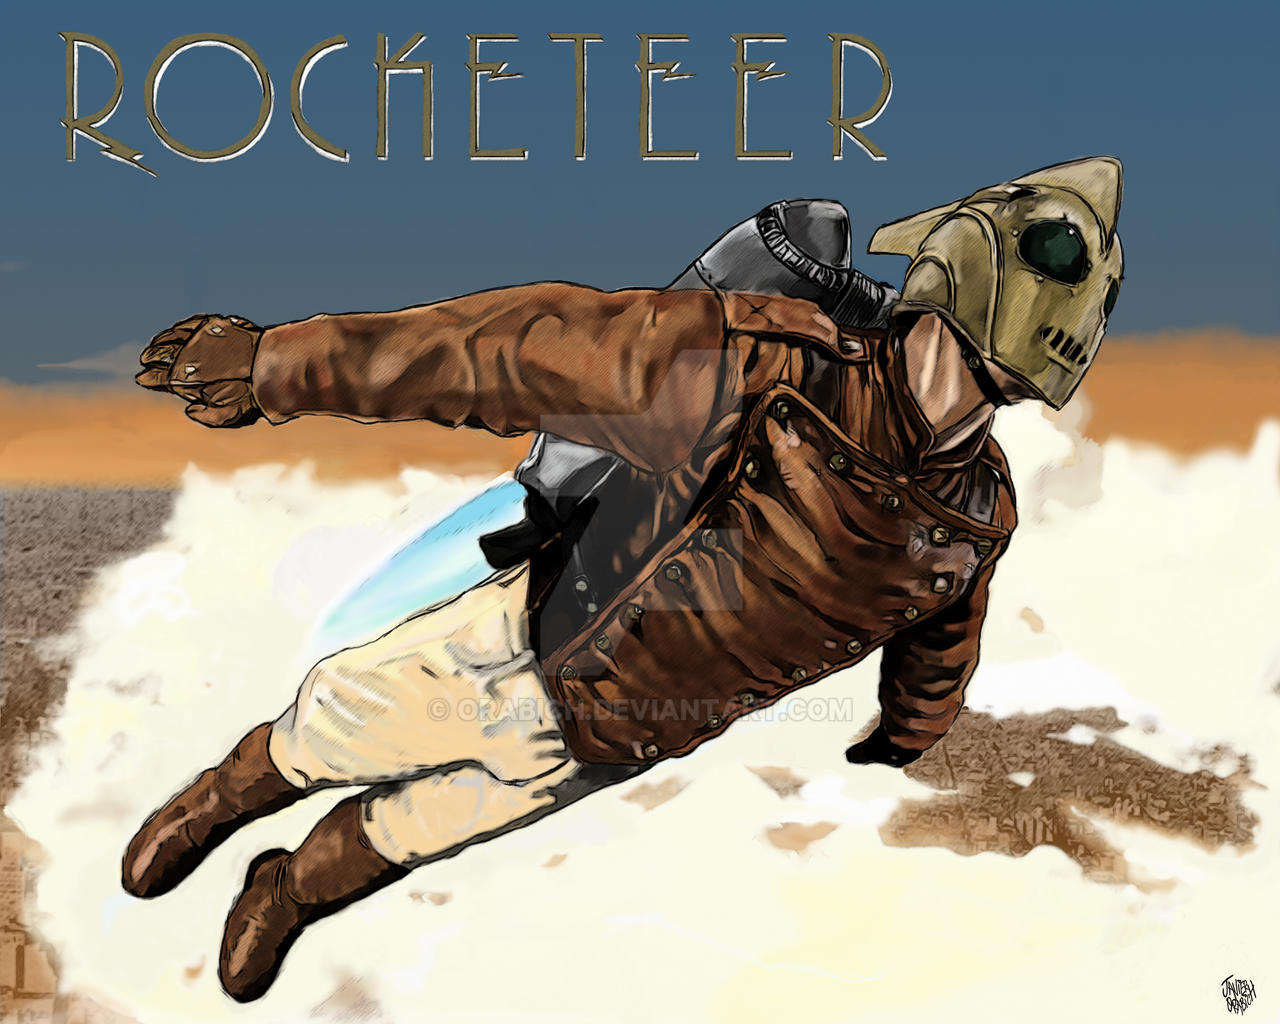 ROCKETEER by orabich